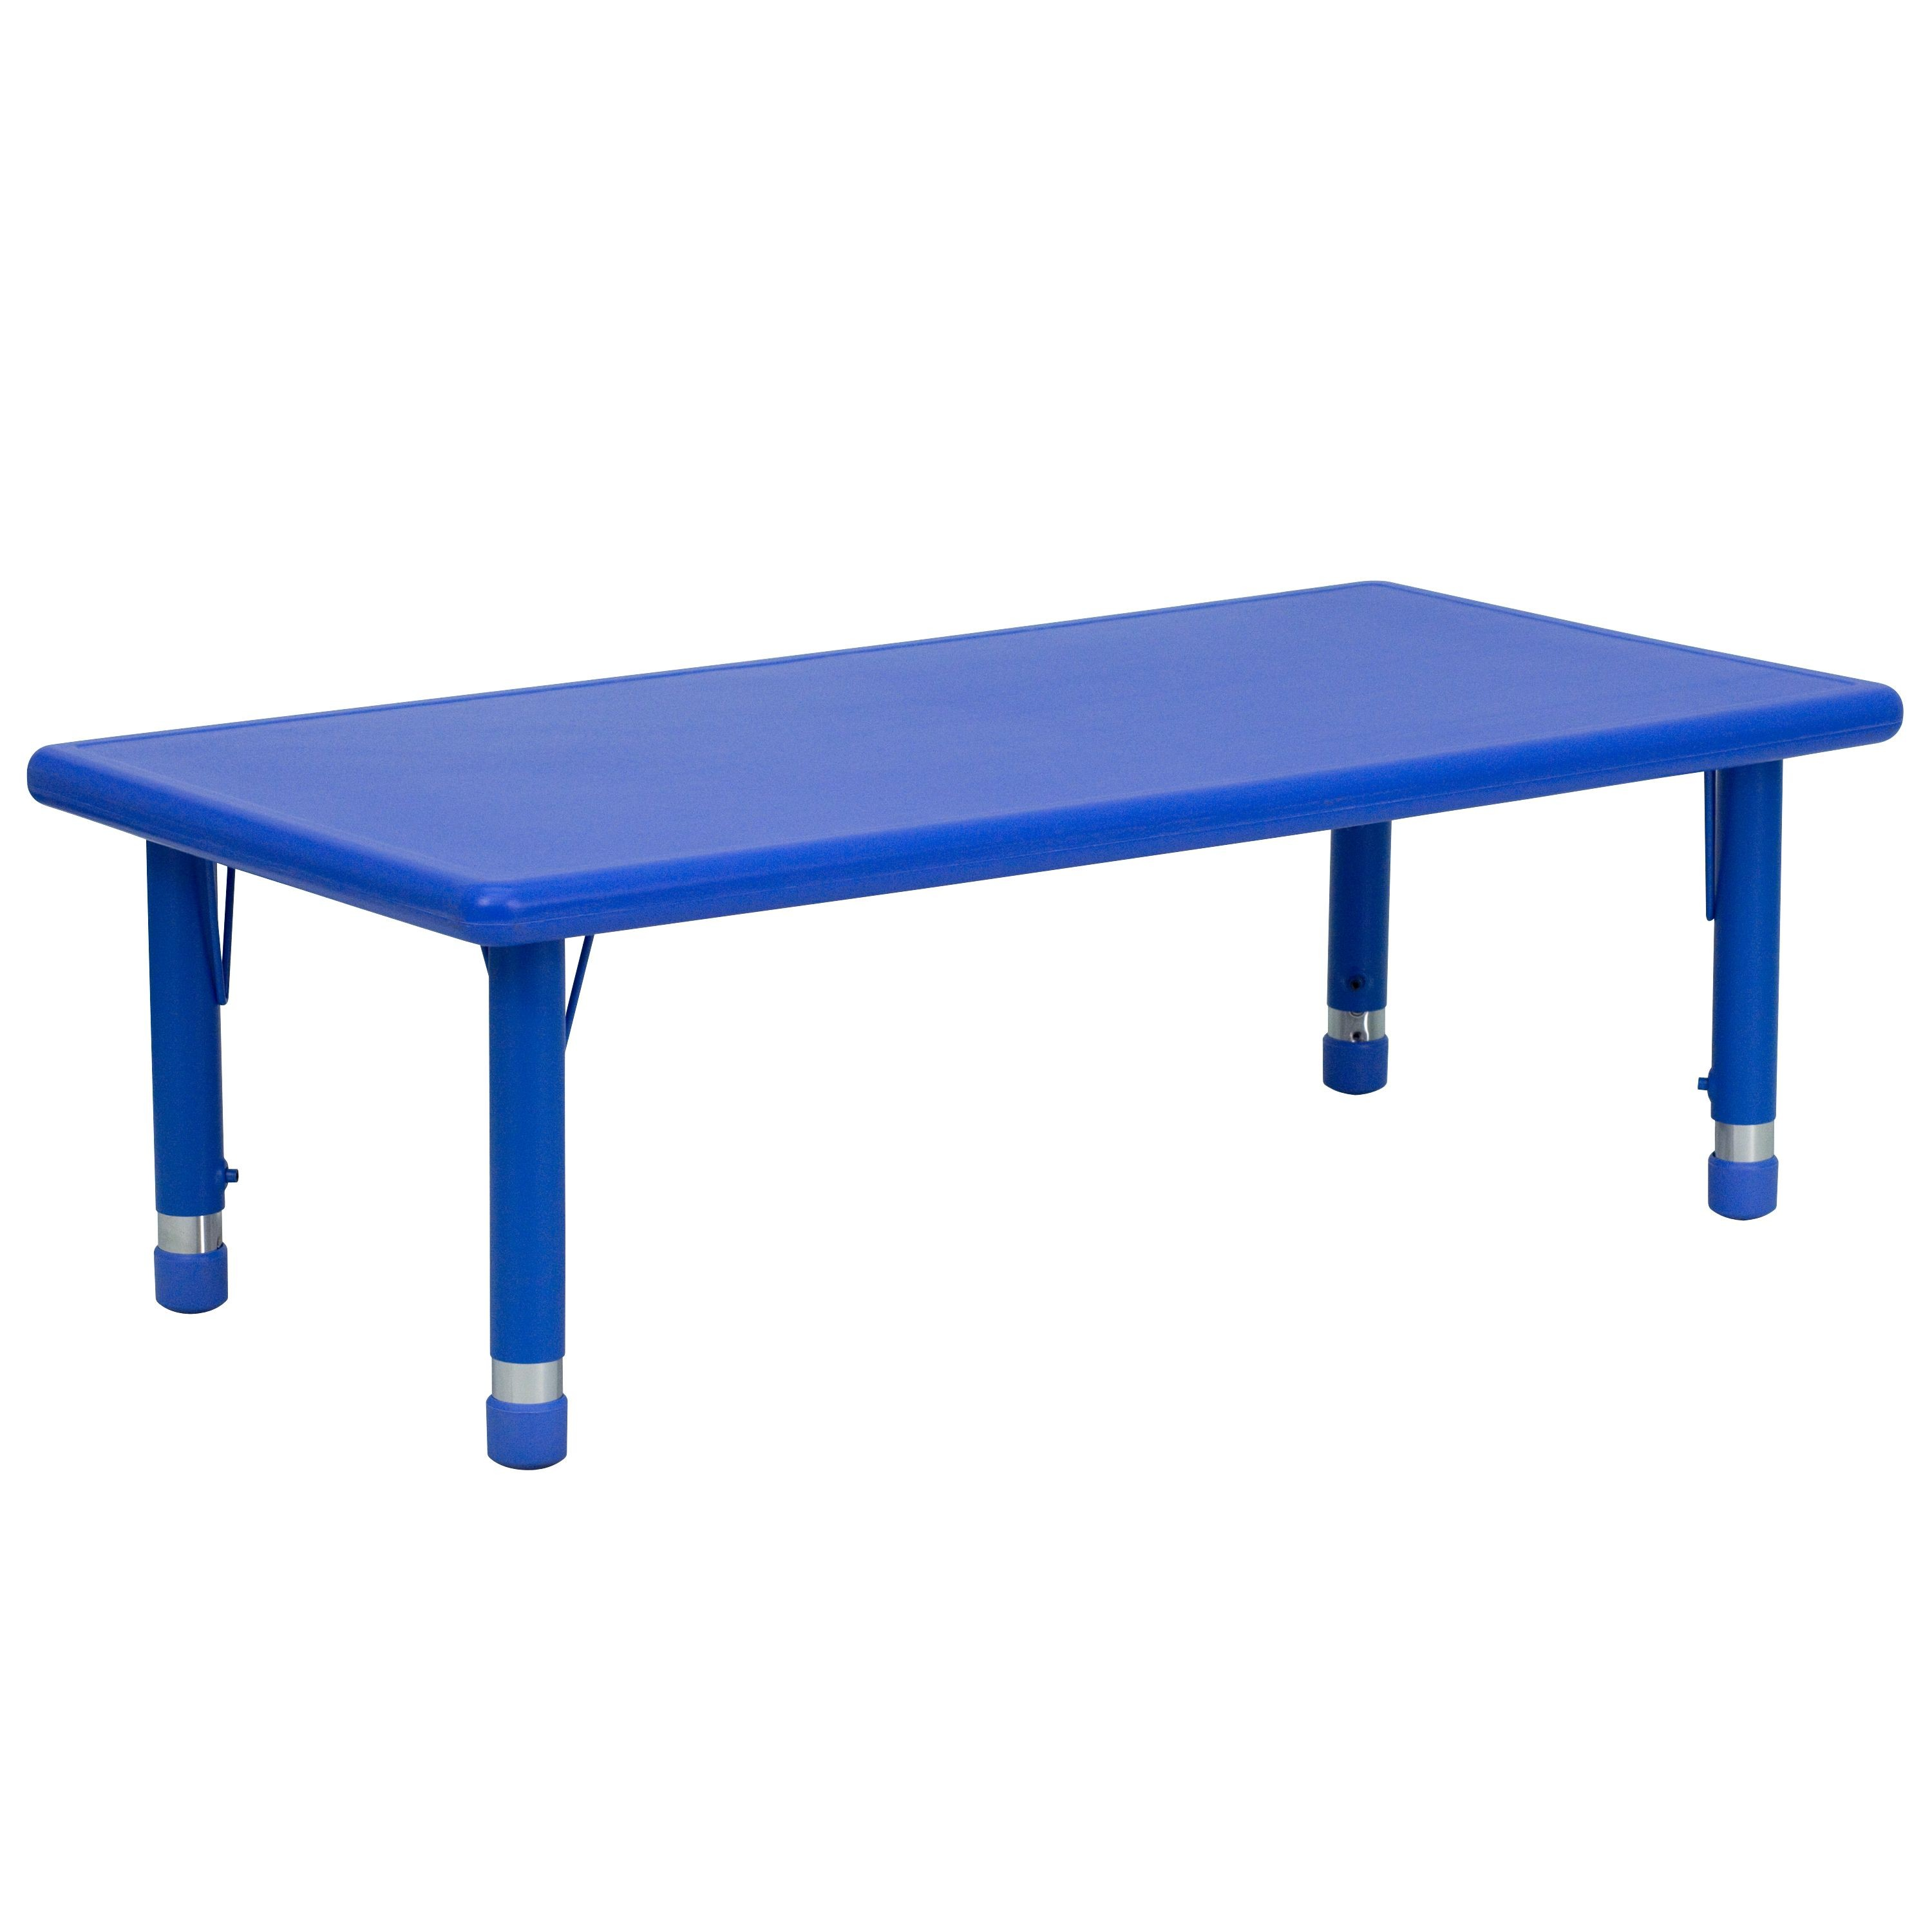 "Flash Furniture YU-YCX-001-2-RECT-TBL-BLUE-GG 24""W x 48""L Height Adjustable Rectangular Blue Plastic Activity Table"